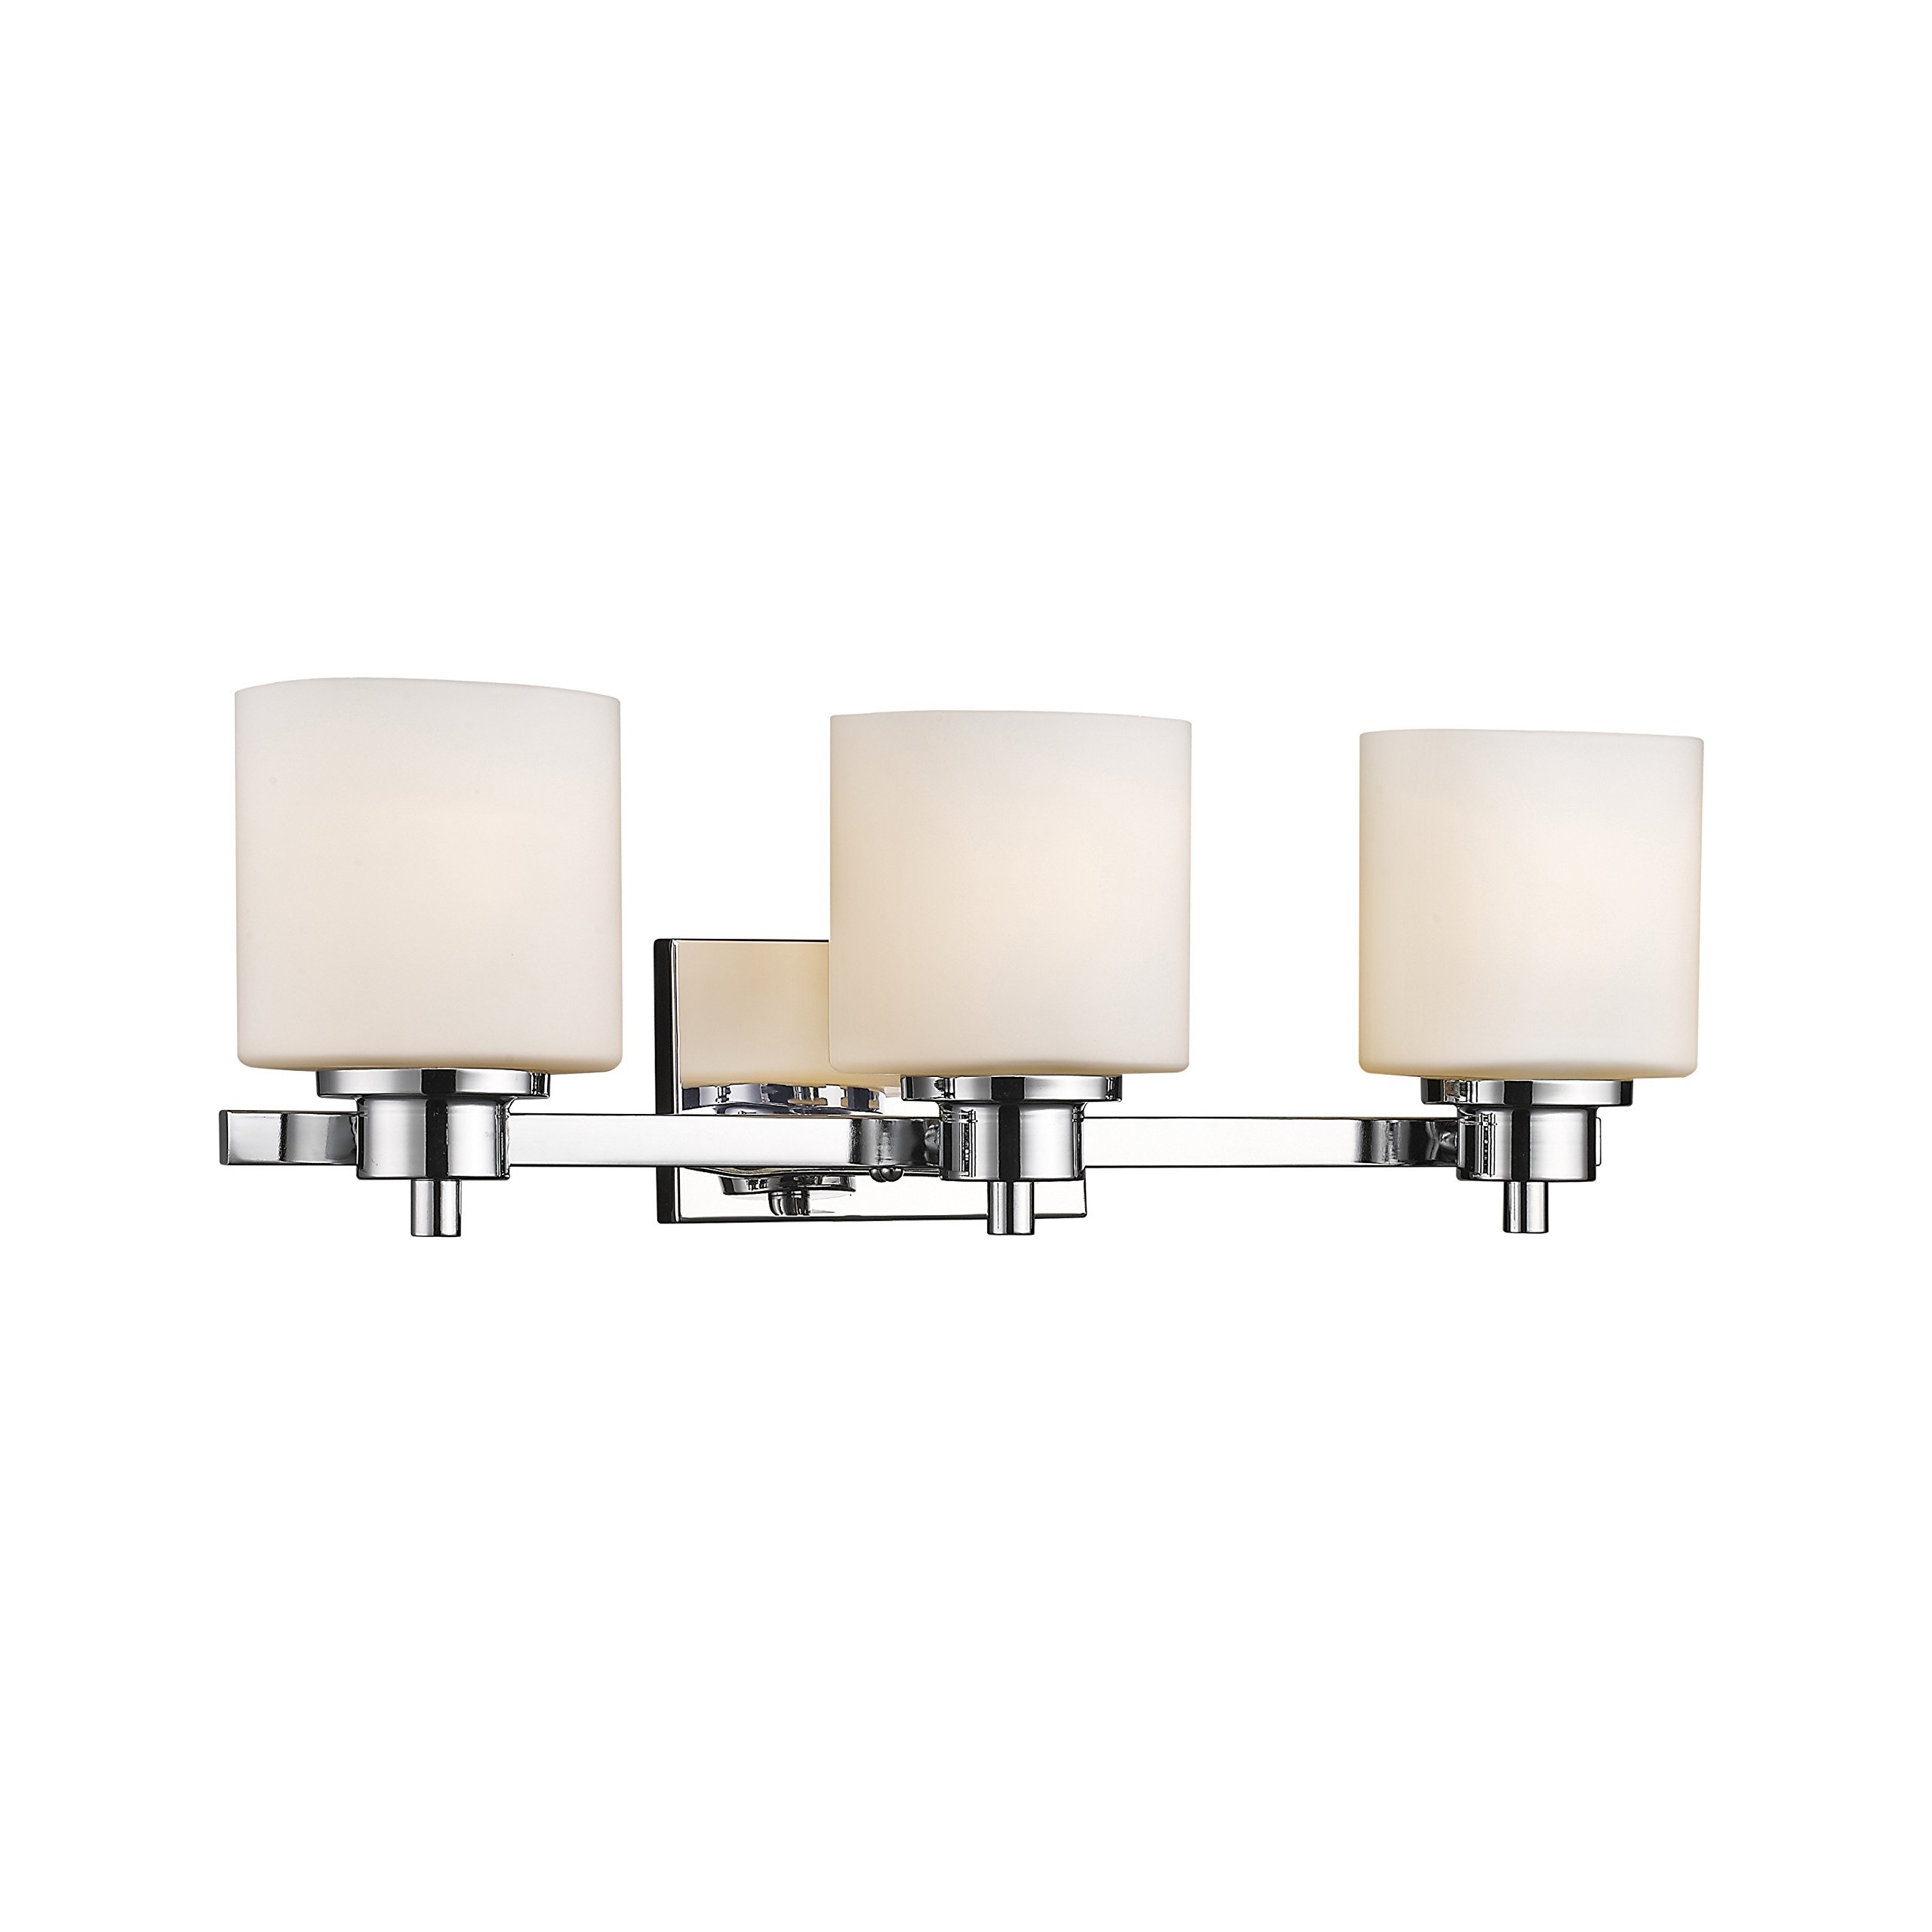 Chloe Lighting CH821036CM24-BL3 Contemporary 3 Light Chrome Finish Bath Vanity Wall Fixture White Alabaster Glass 24'' Wide by Chloe Lighting (Image #2)